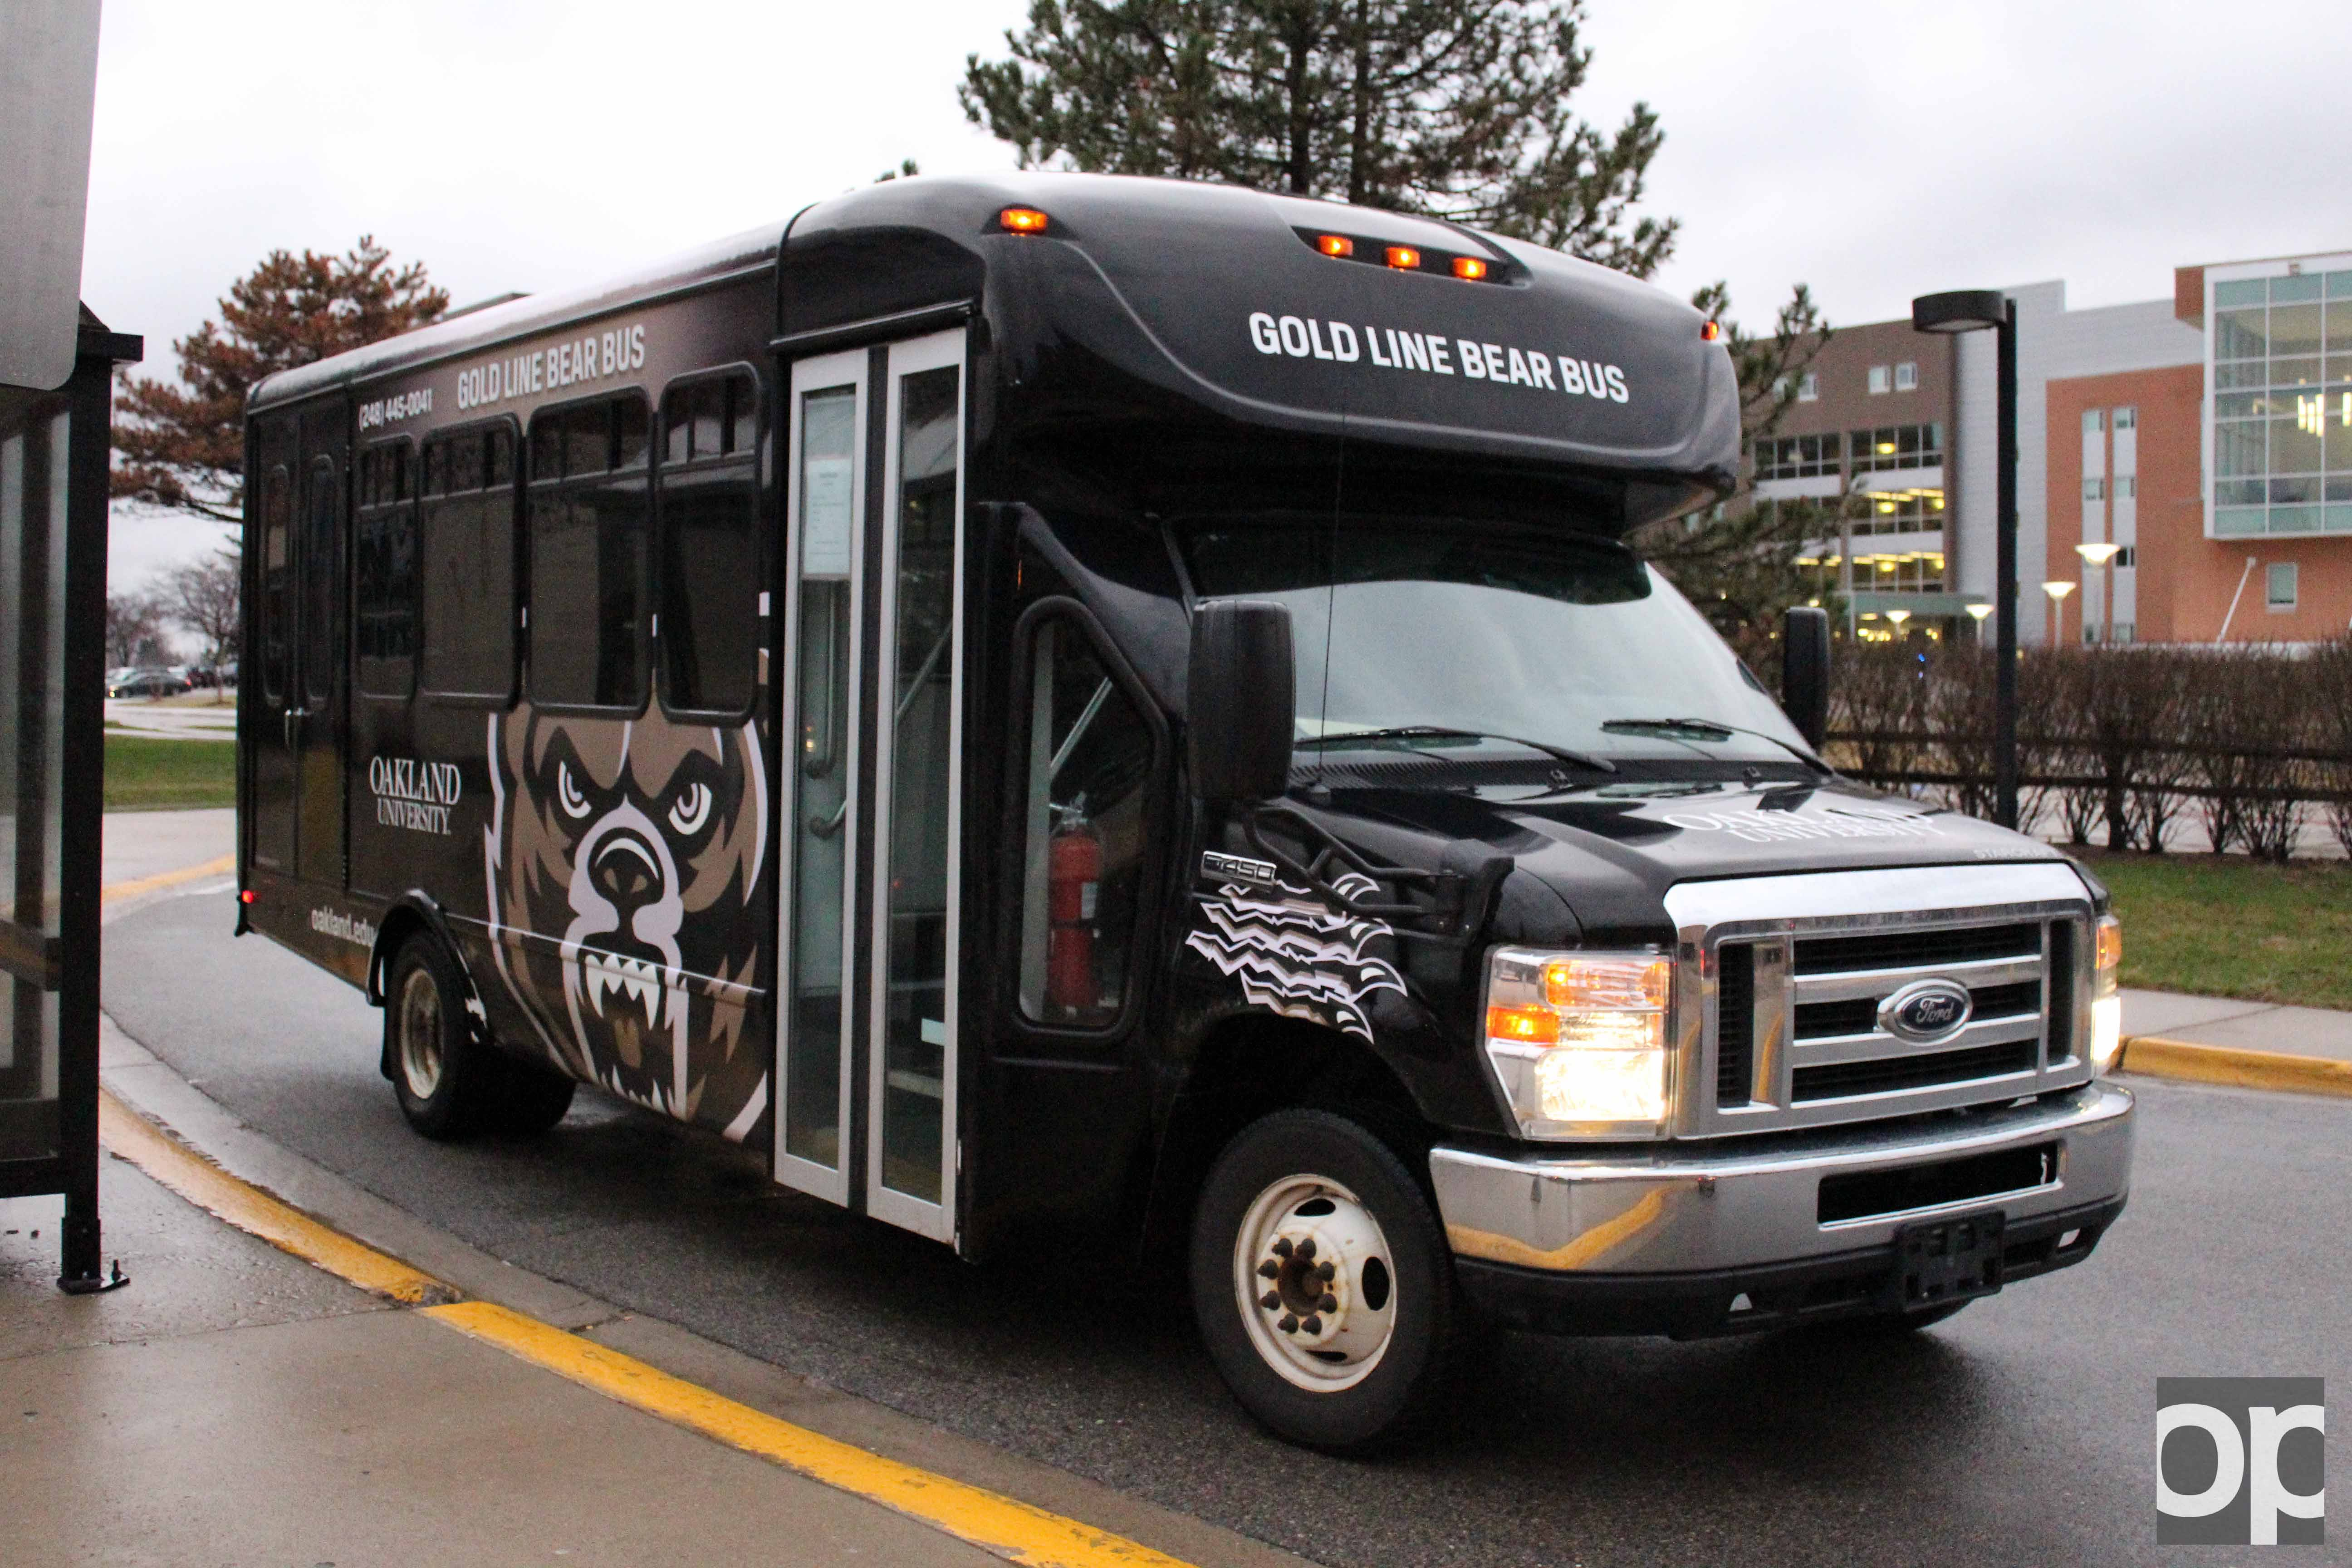 The Bear bus provides transportation for students and faculty to locations within the campus and some off-campus locations.